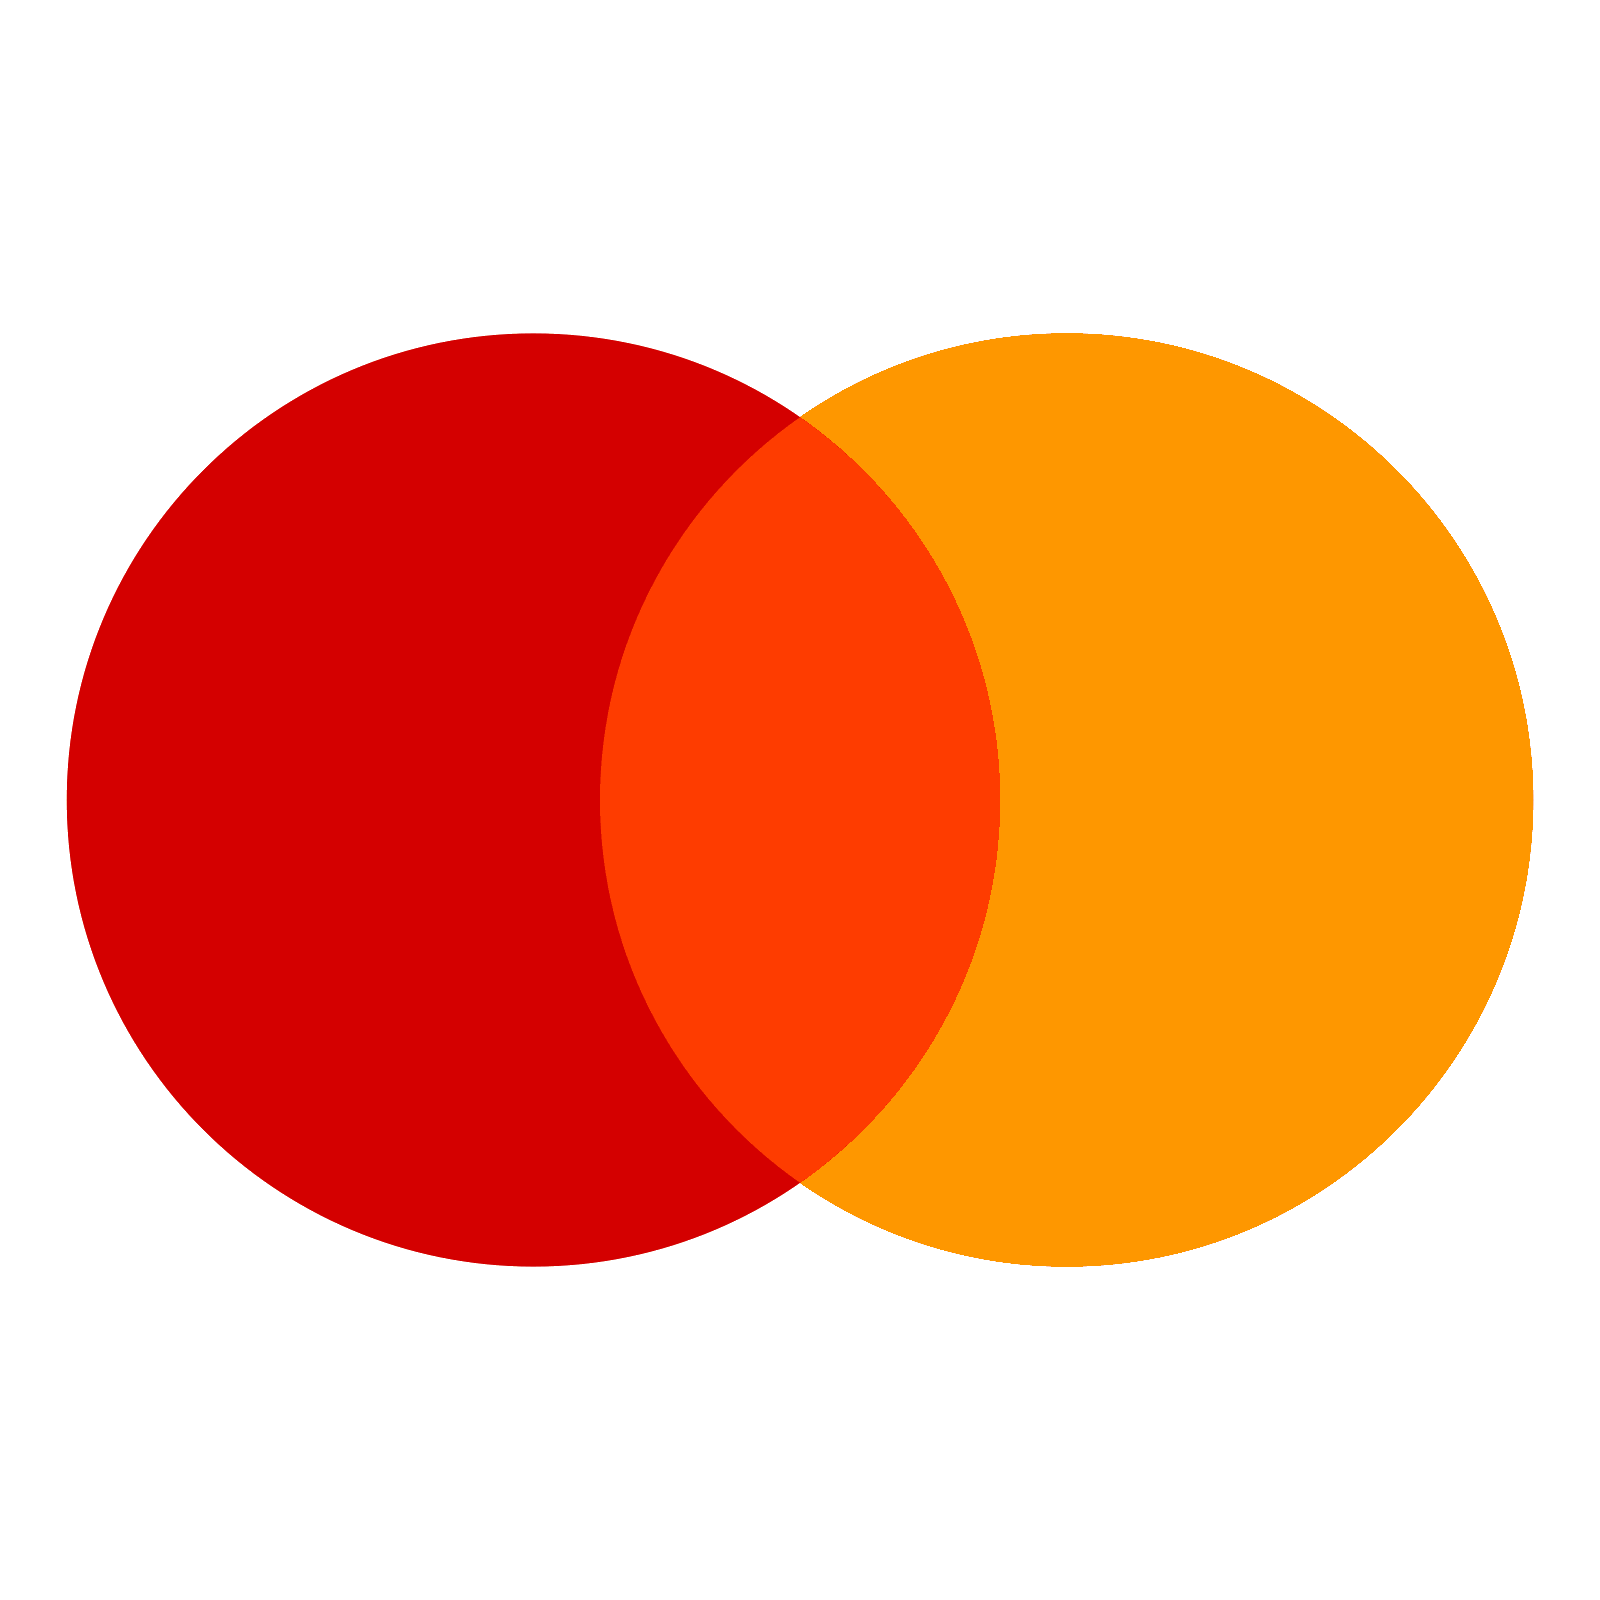 mastercard logo mastercard logo png vector download #26161